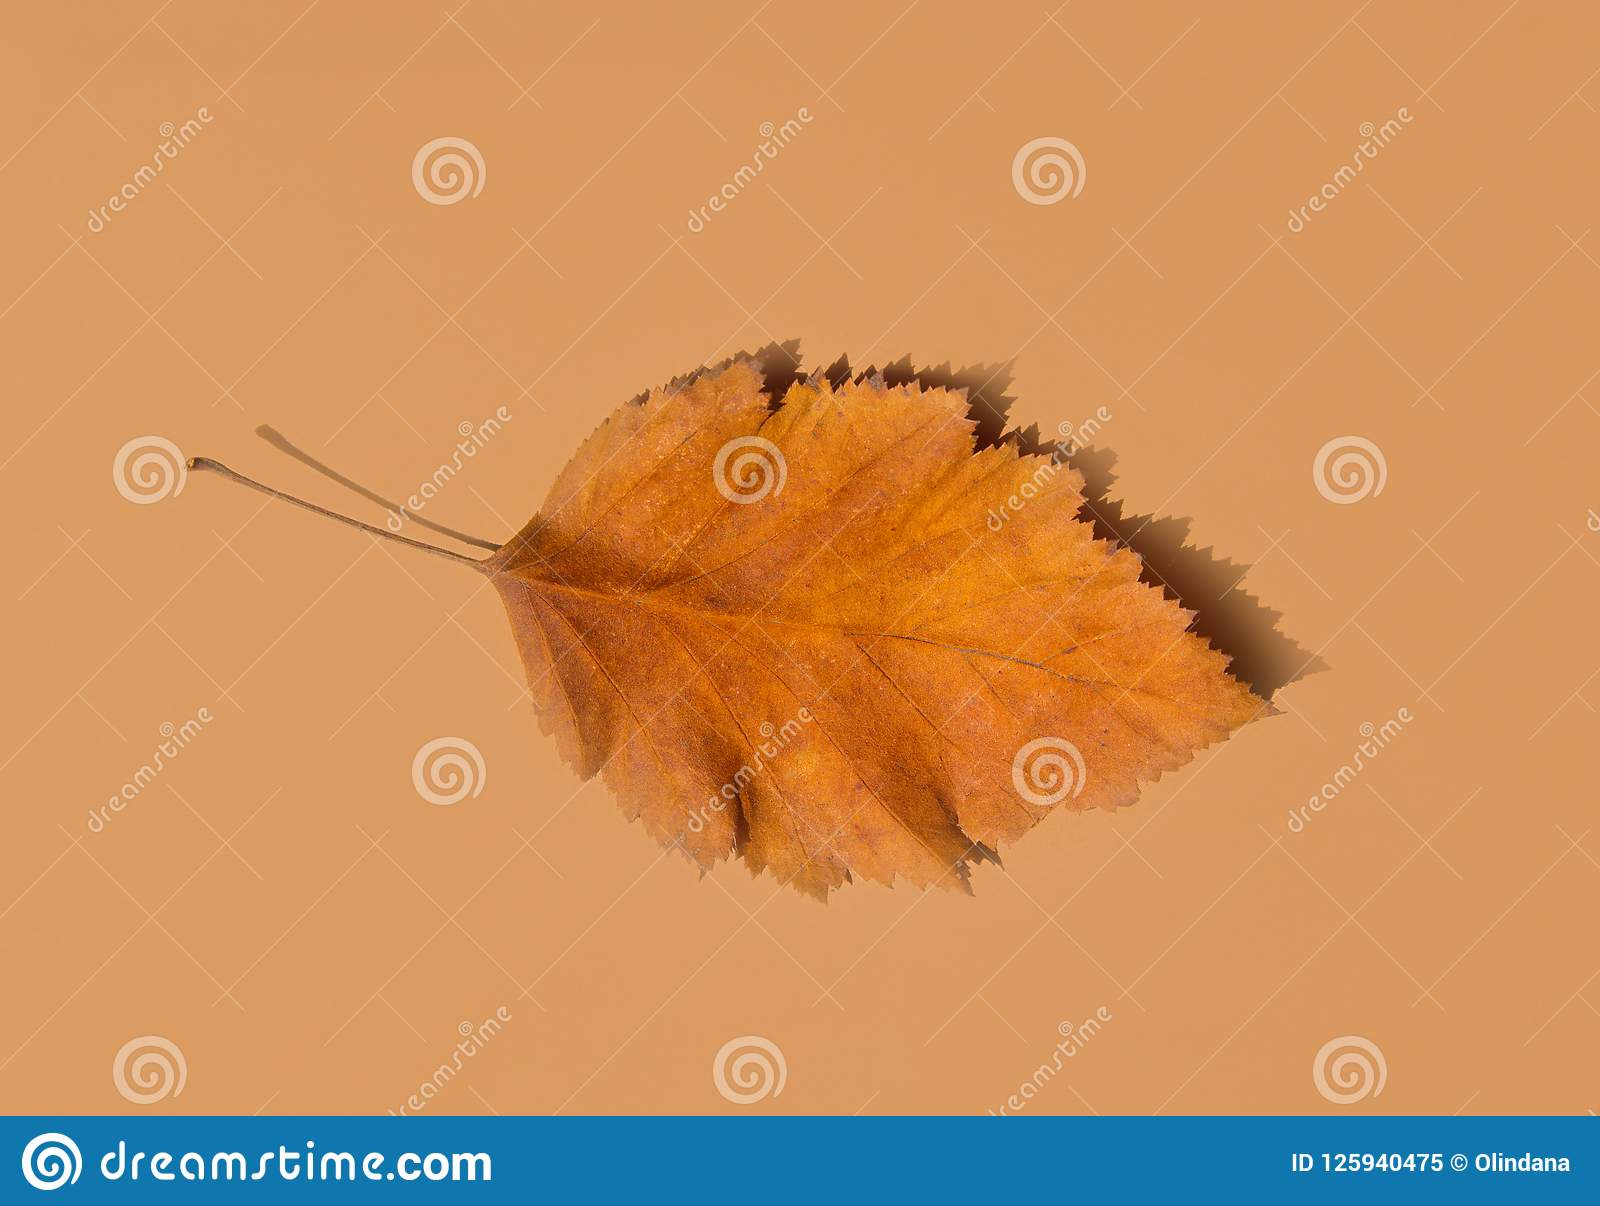 Beautiful Autumnal Background. Dry Orange yellow leaf with foggy edges on beige brown solid background. Thanksgiving